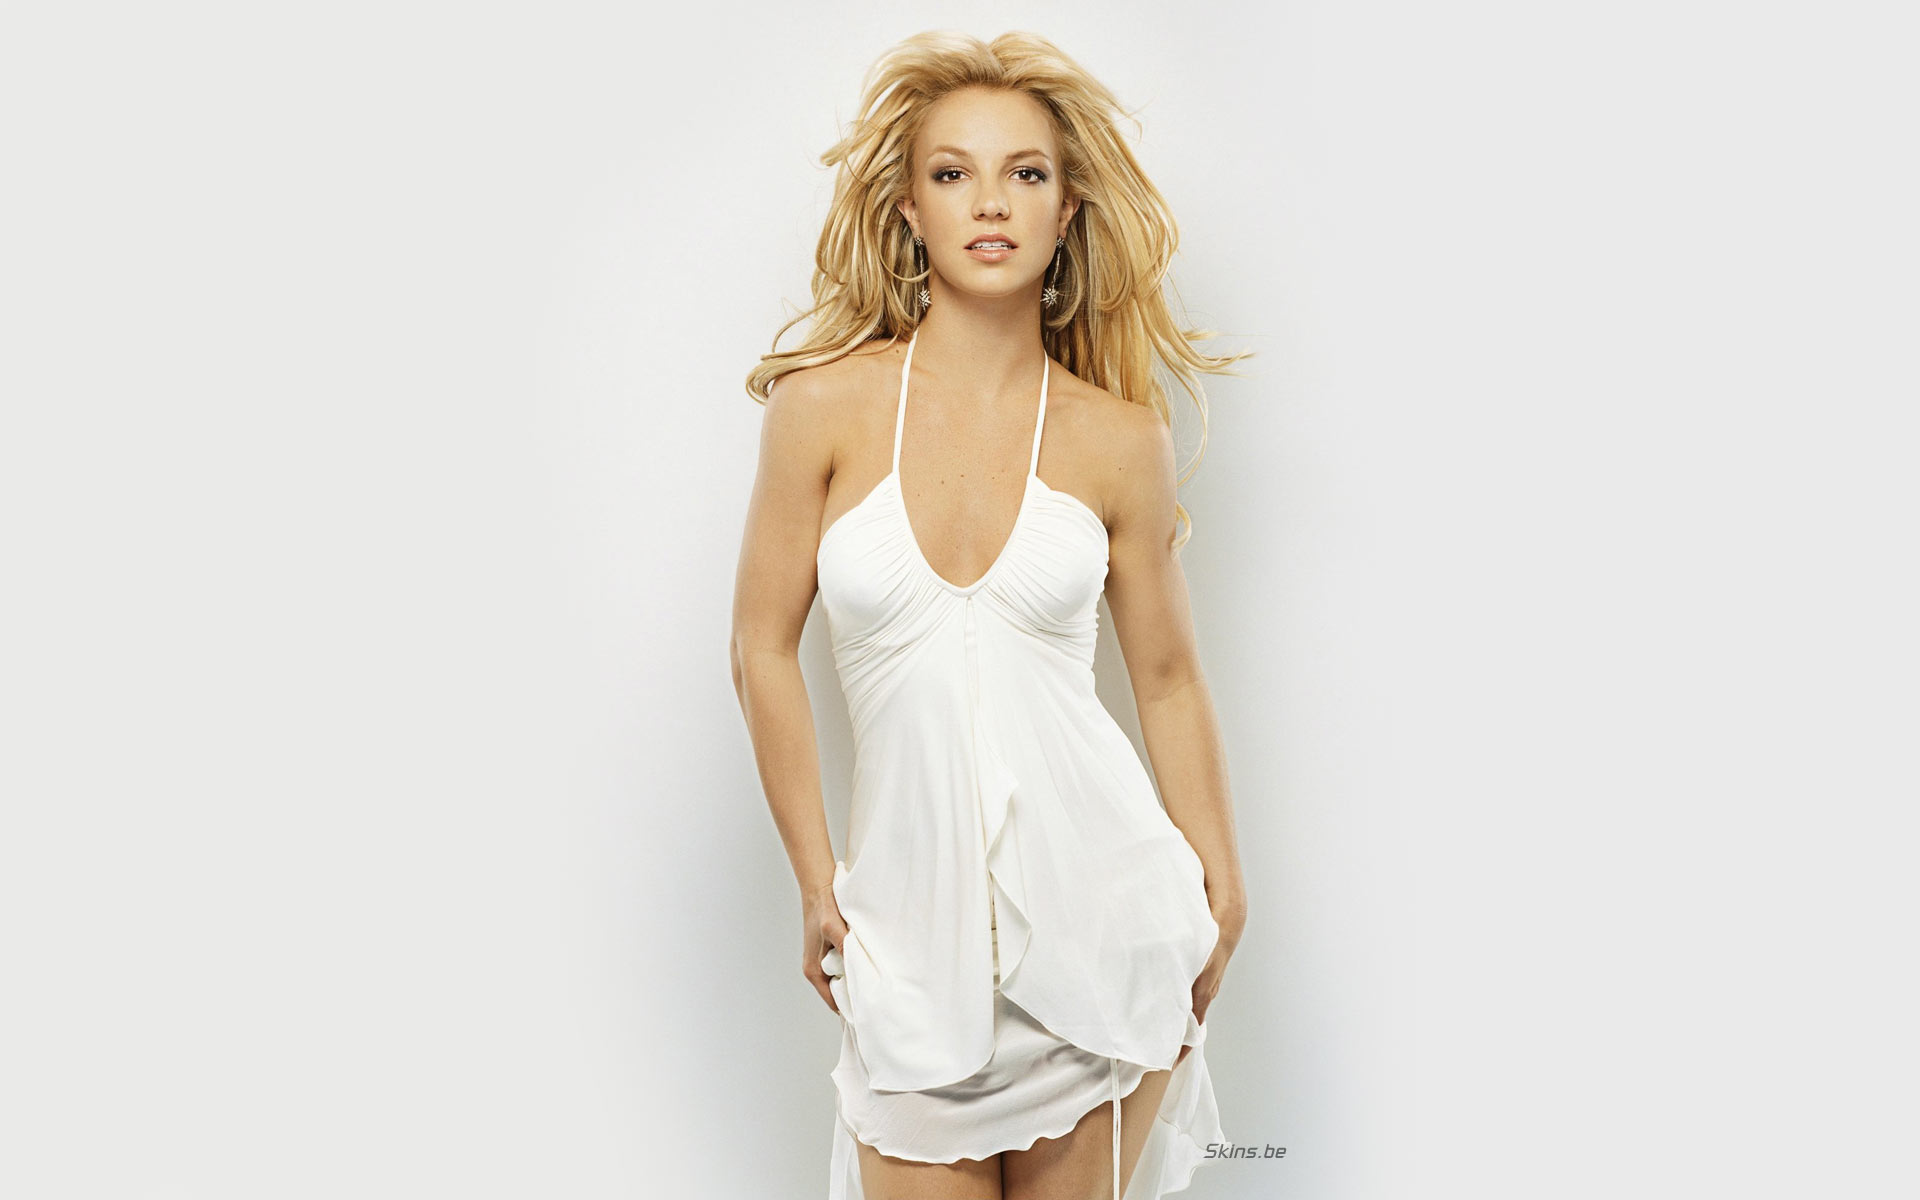 Britney Spears singer musician blondes women females girls sexy babes face eyes legs cleavage        c